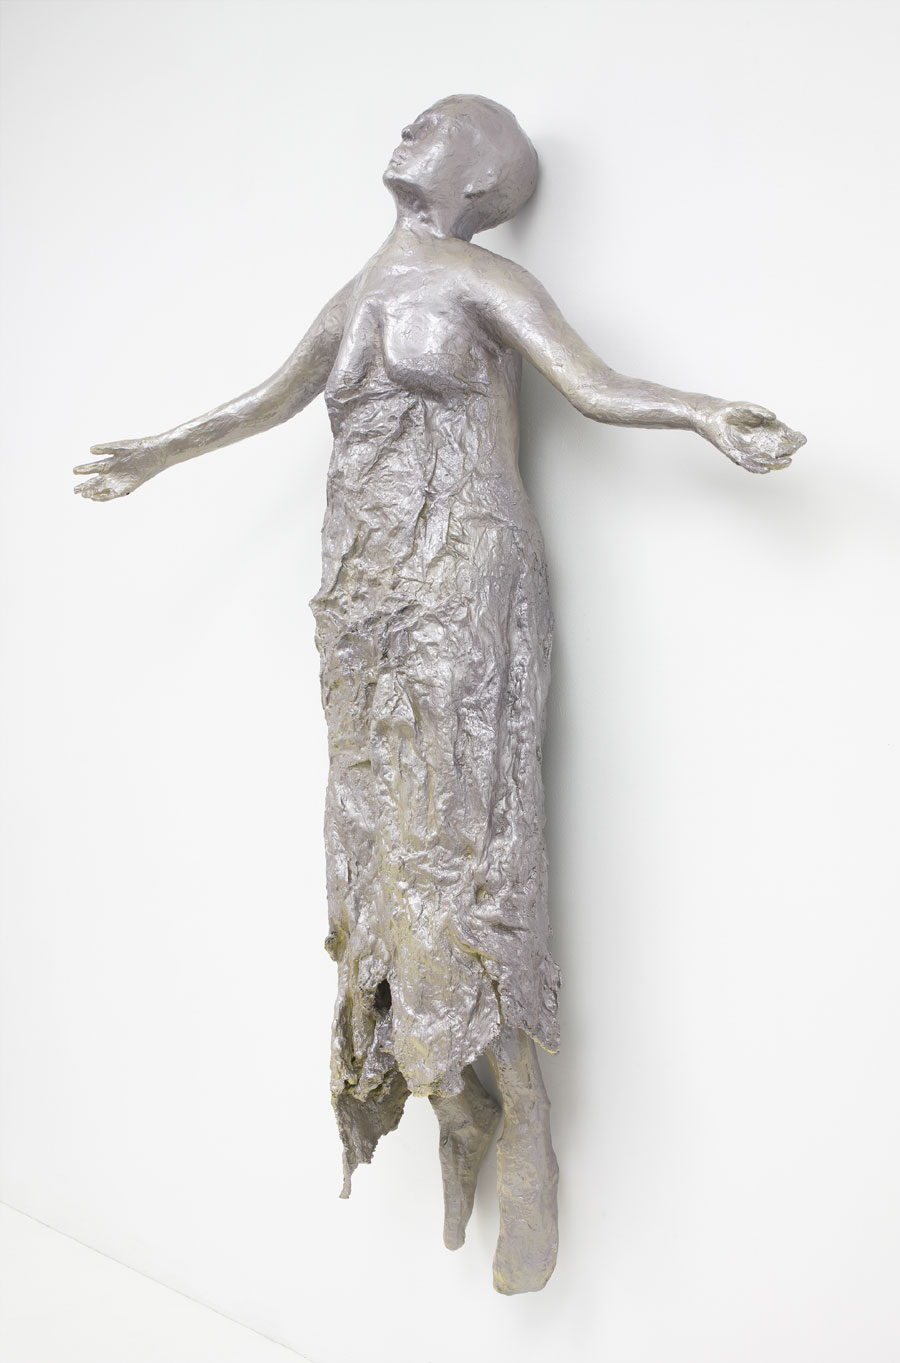 Kiki Smith turns everyday objects into mystical creations